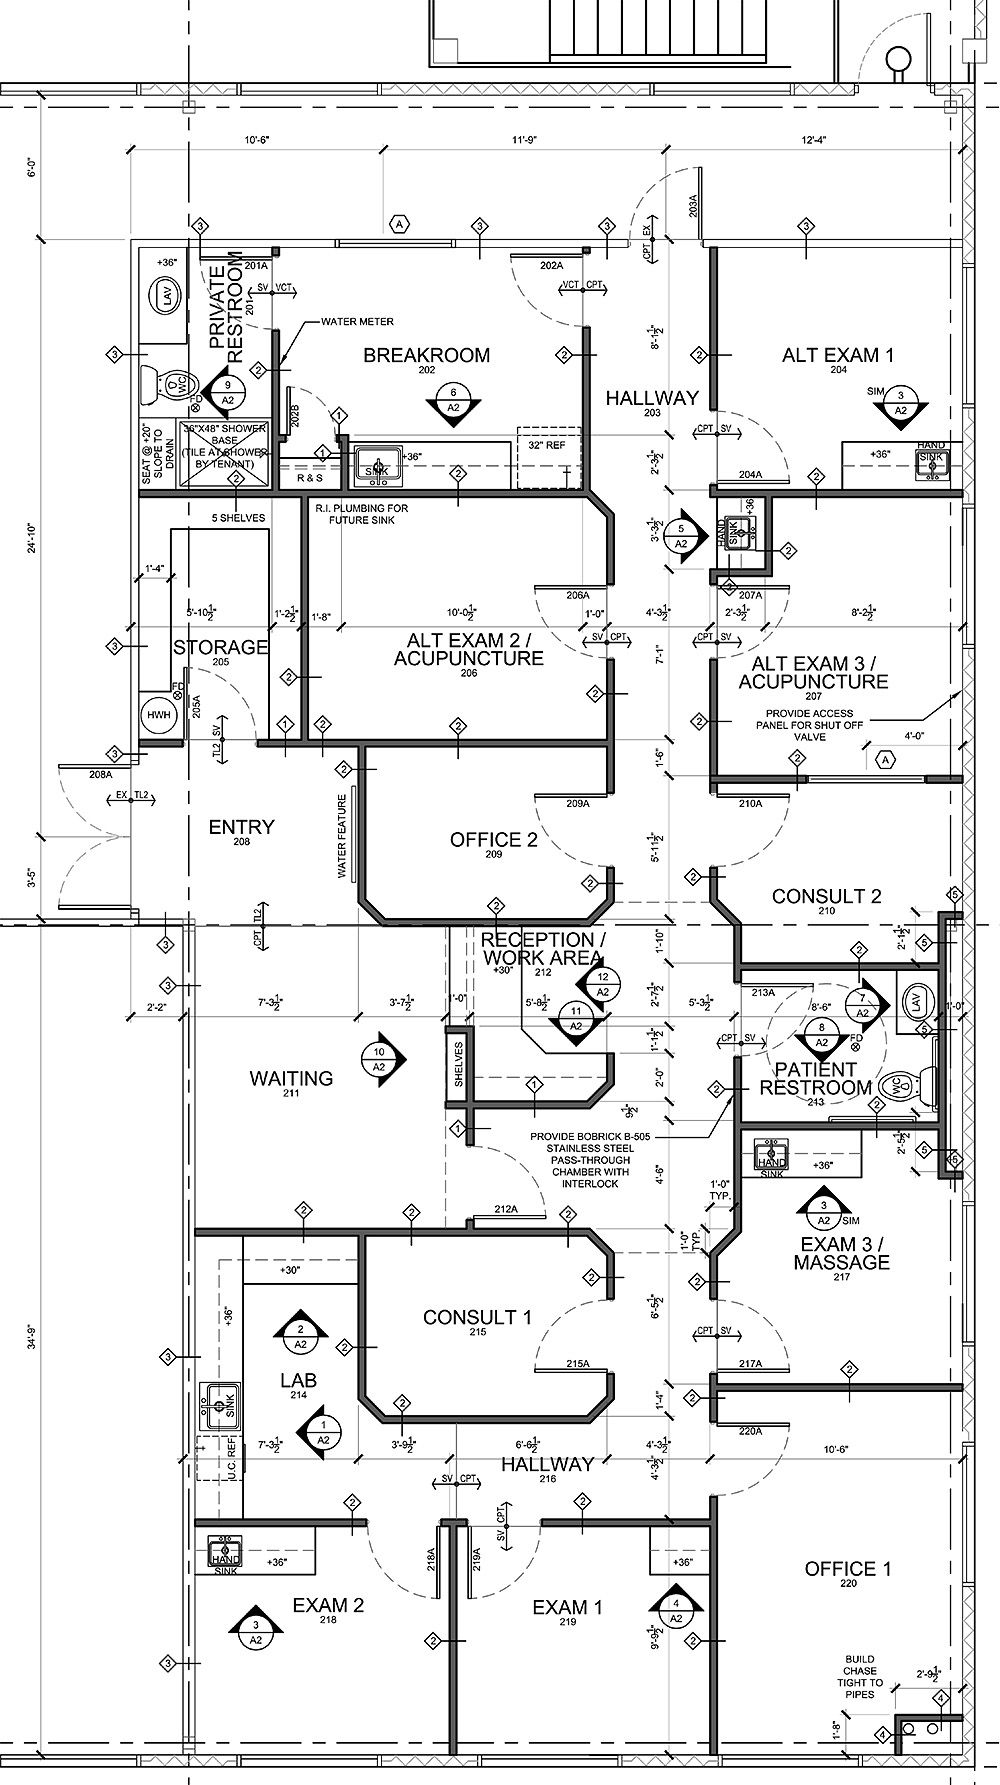 Medical Office Design Plans Advice For Medical Office